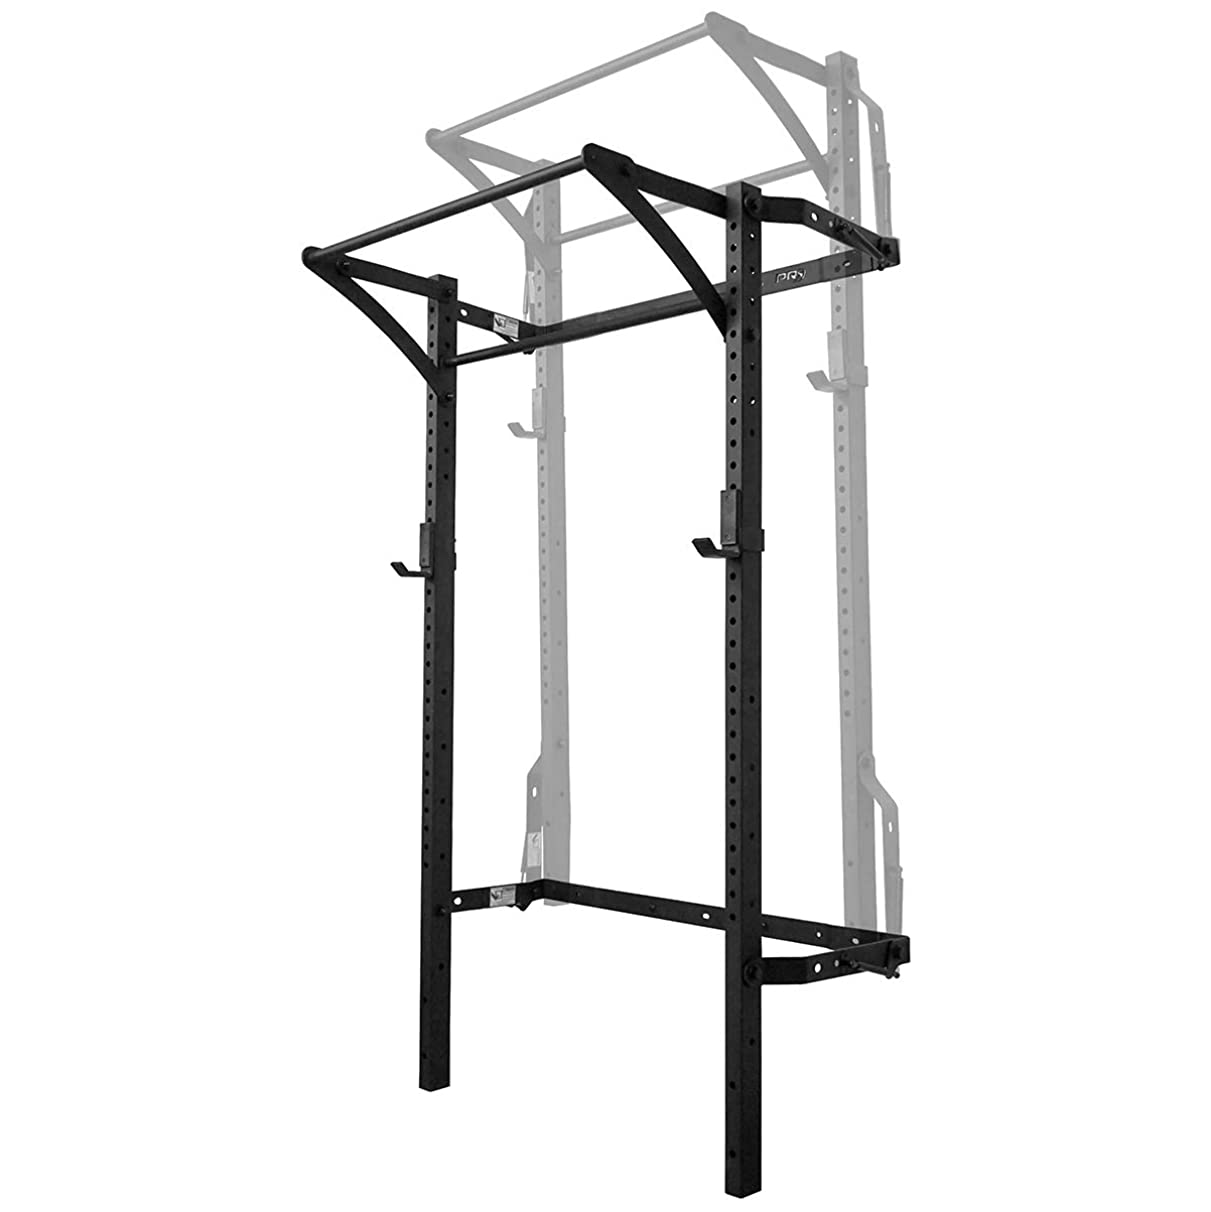 PRx Performance Murphy Rack, Wall Mounted Squat Rack, Folds Up, 90 Inch Uprights, Space Saving Home Gym Equipment